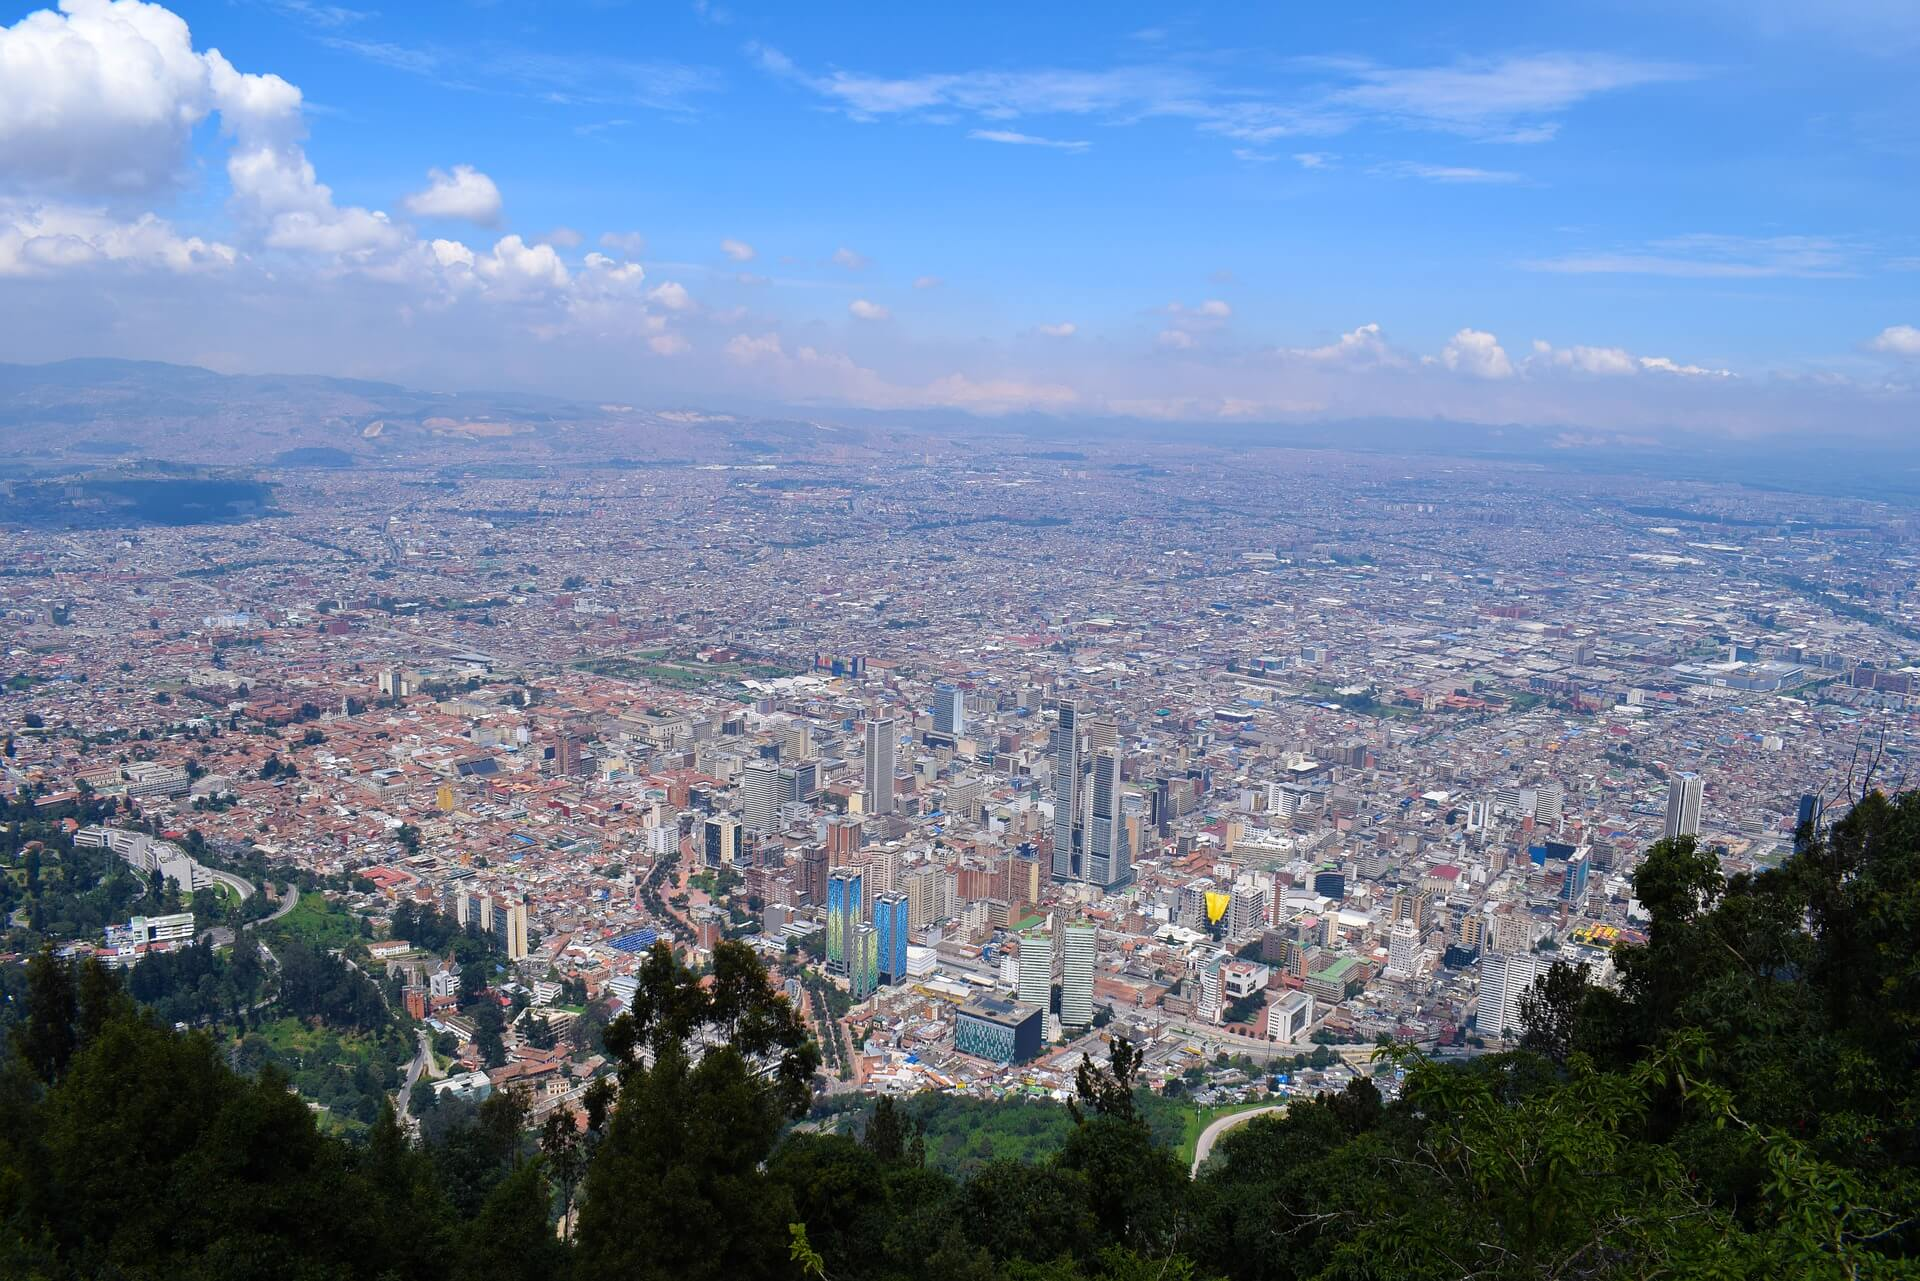 Colombia DIAN UBL 2.1 E-invoicing Mandate Reminds SAP Shops Why Compliance Matters